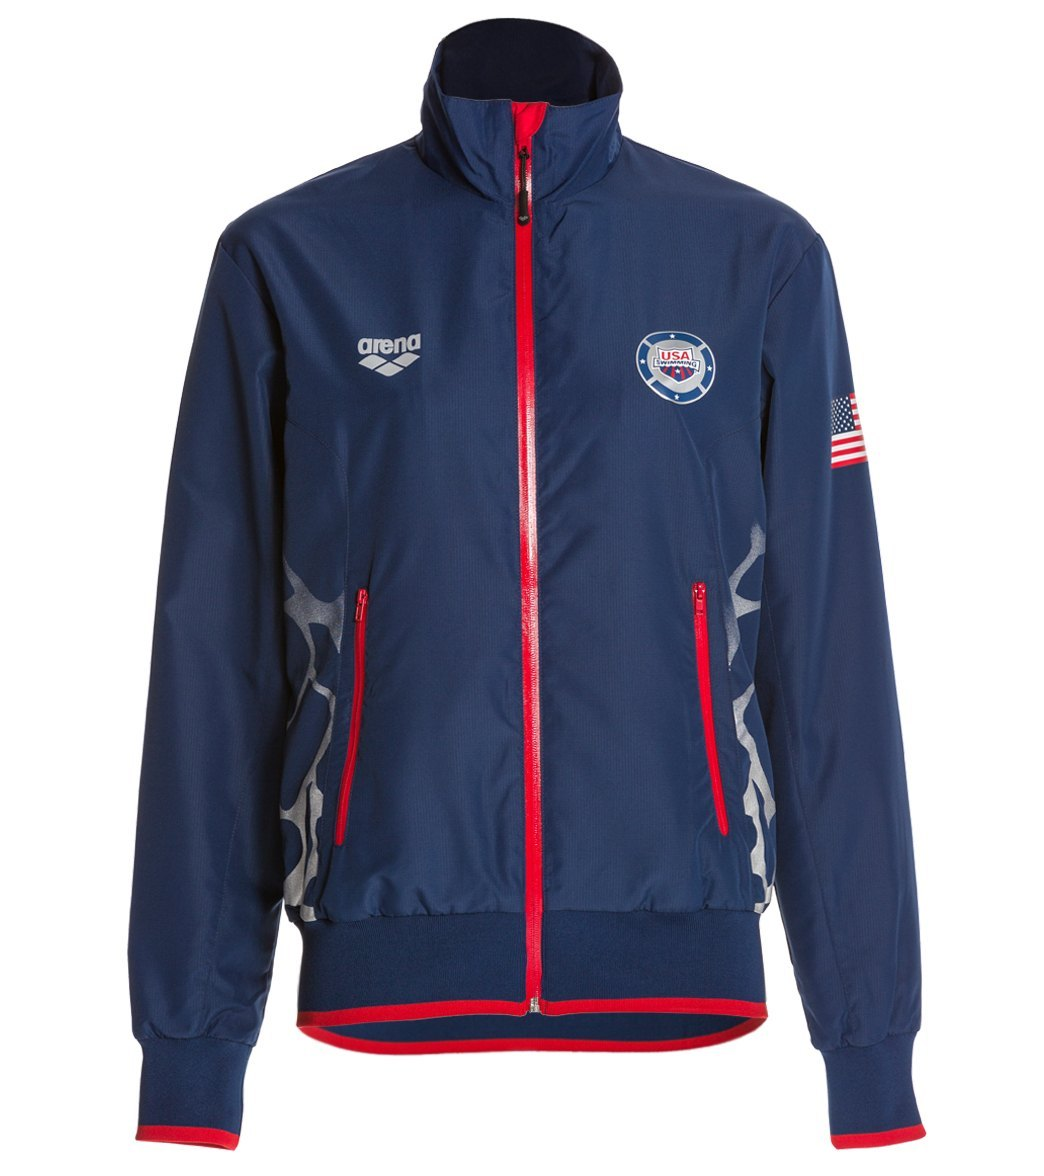 Arena USA Swimming Full Zip Jacket at SwimOutletcom